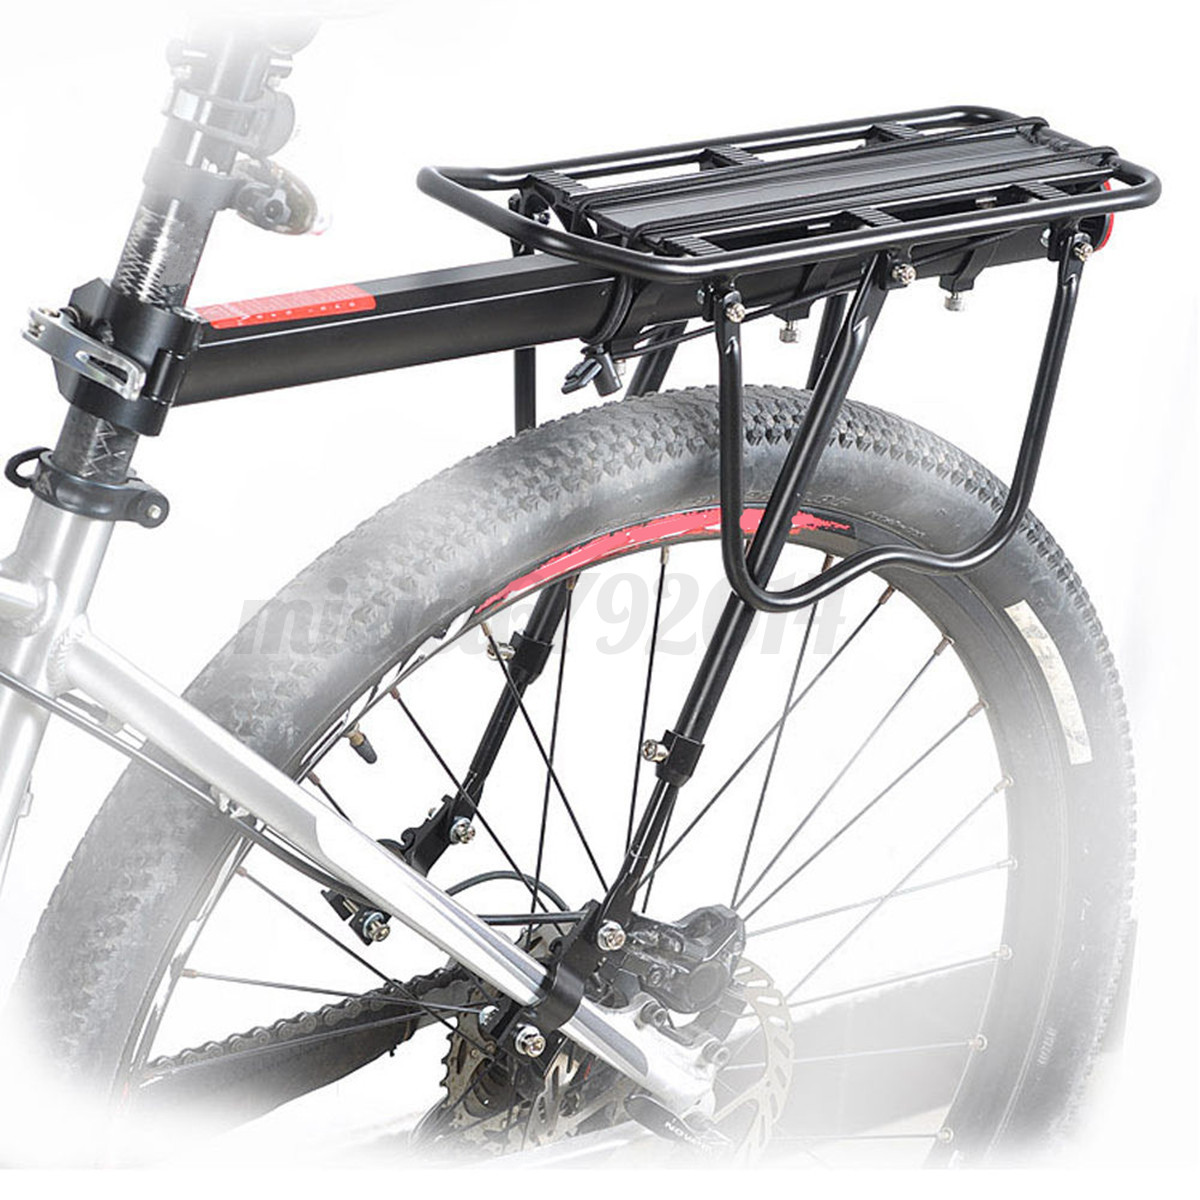 Bicycle Bike Alloy Rear Rack Pannier Carry Carrier